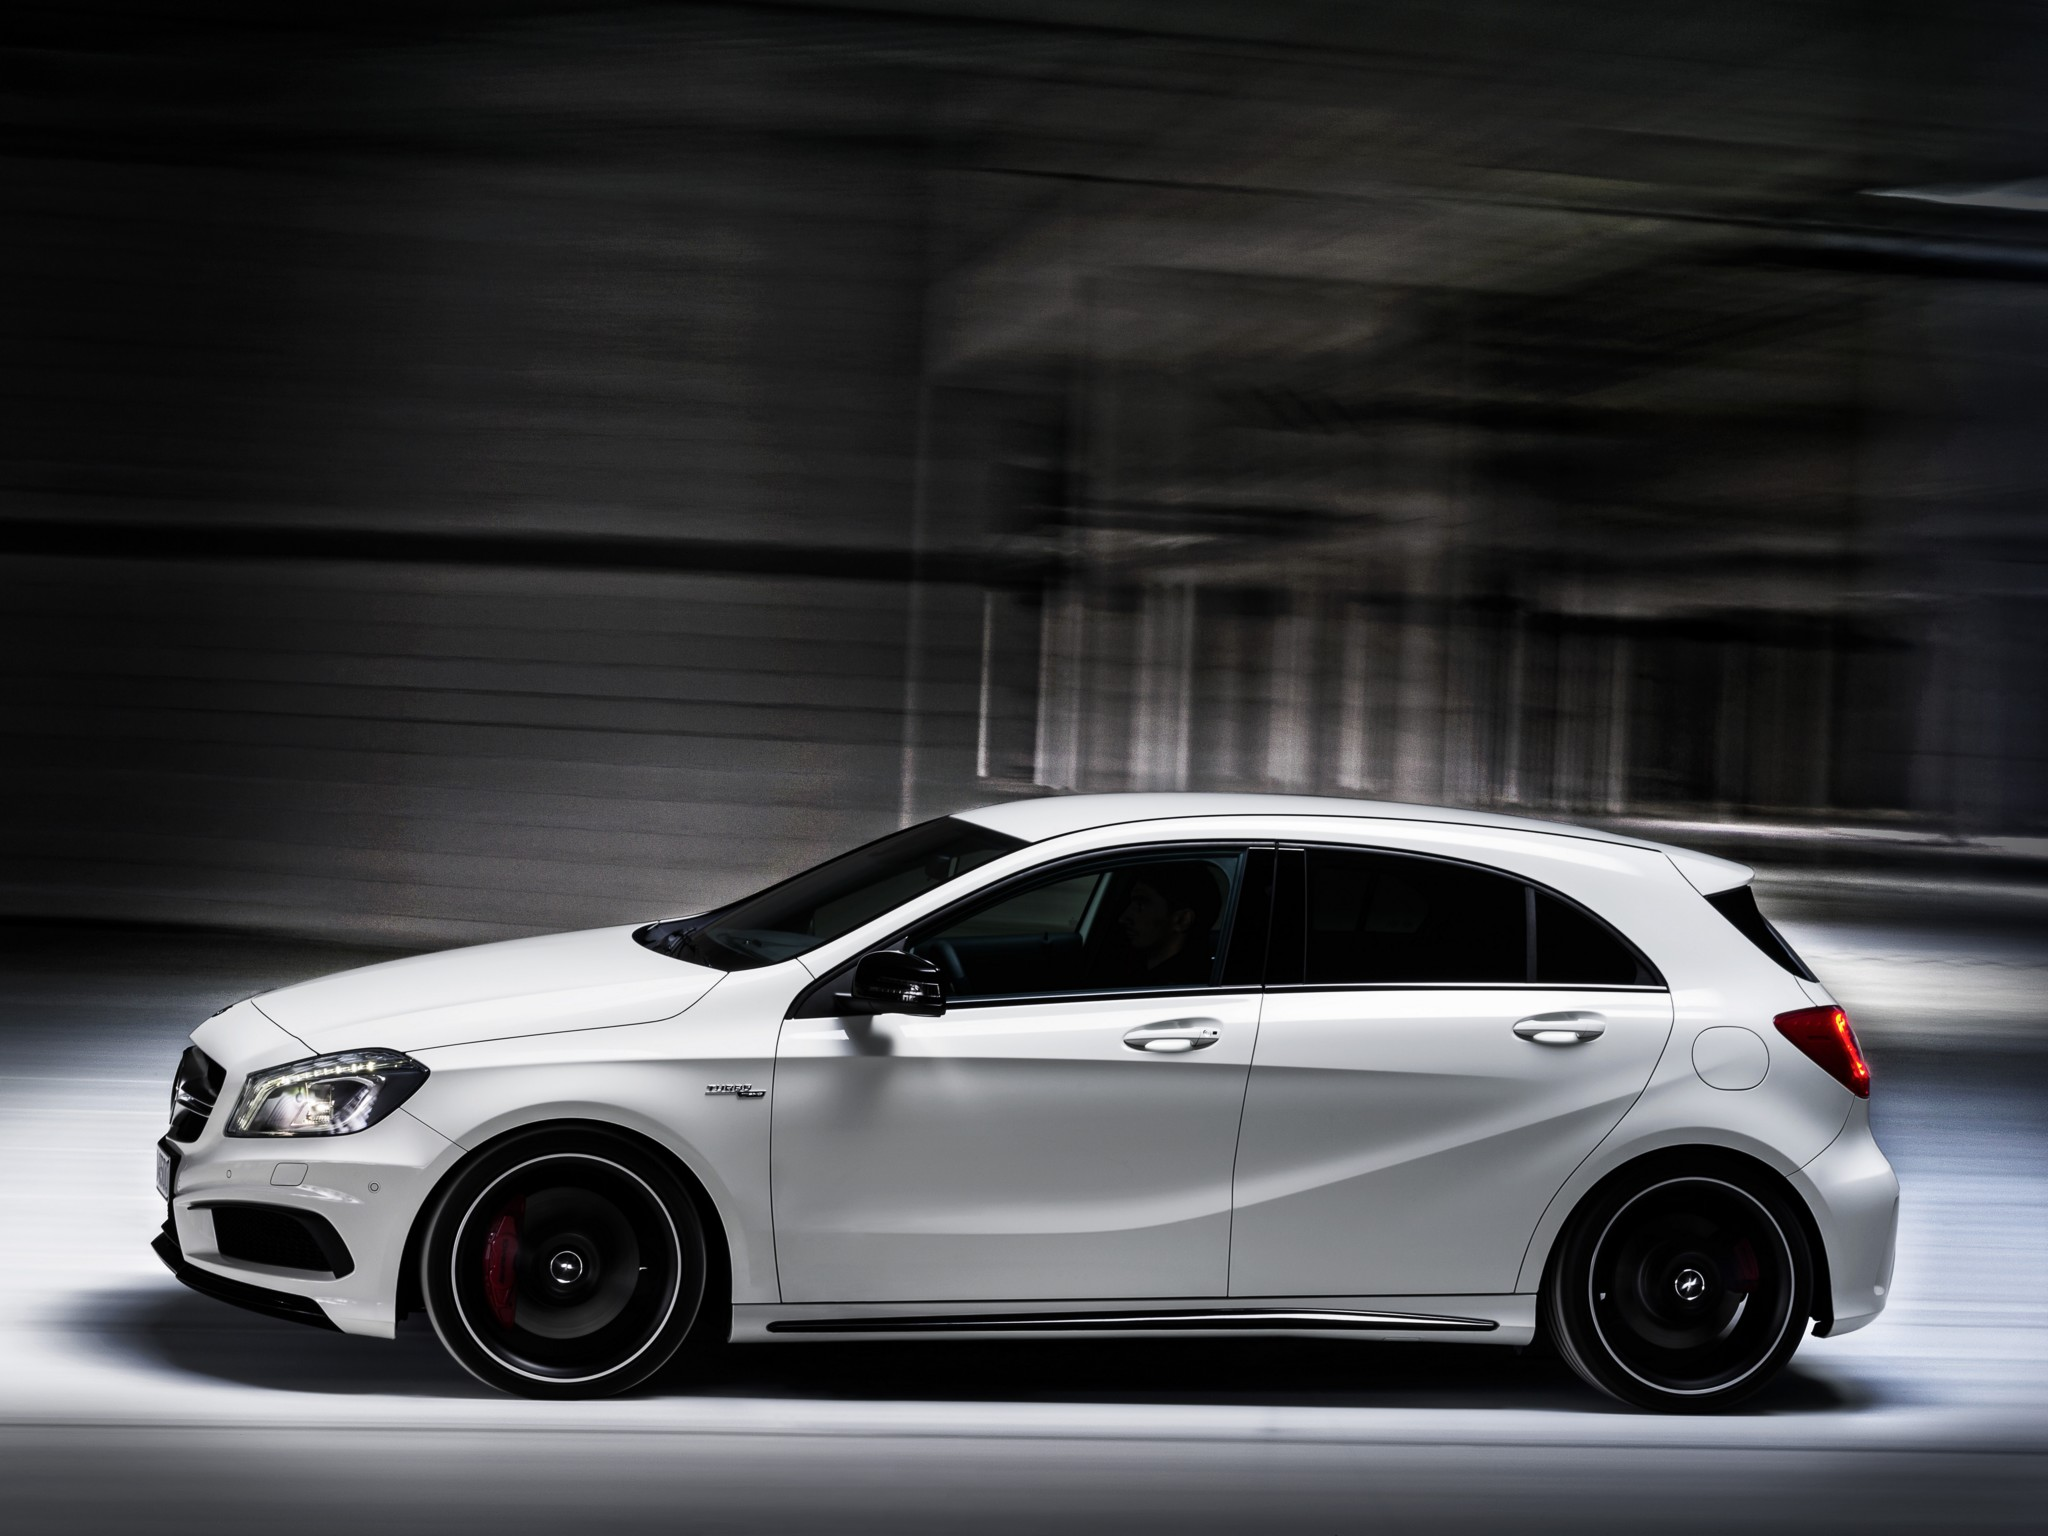 mercedes benz a45 amg w176 specs 2013 2014 2015. Black Bedroom Furniture Sets. Home Design Ideas